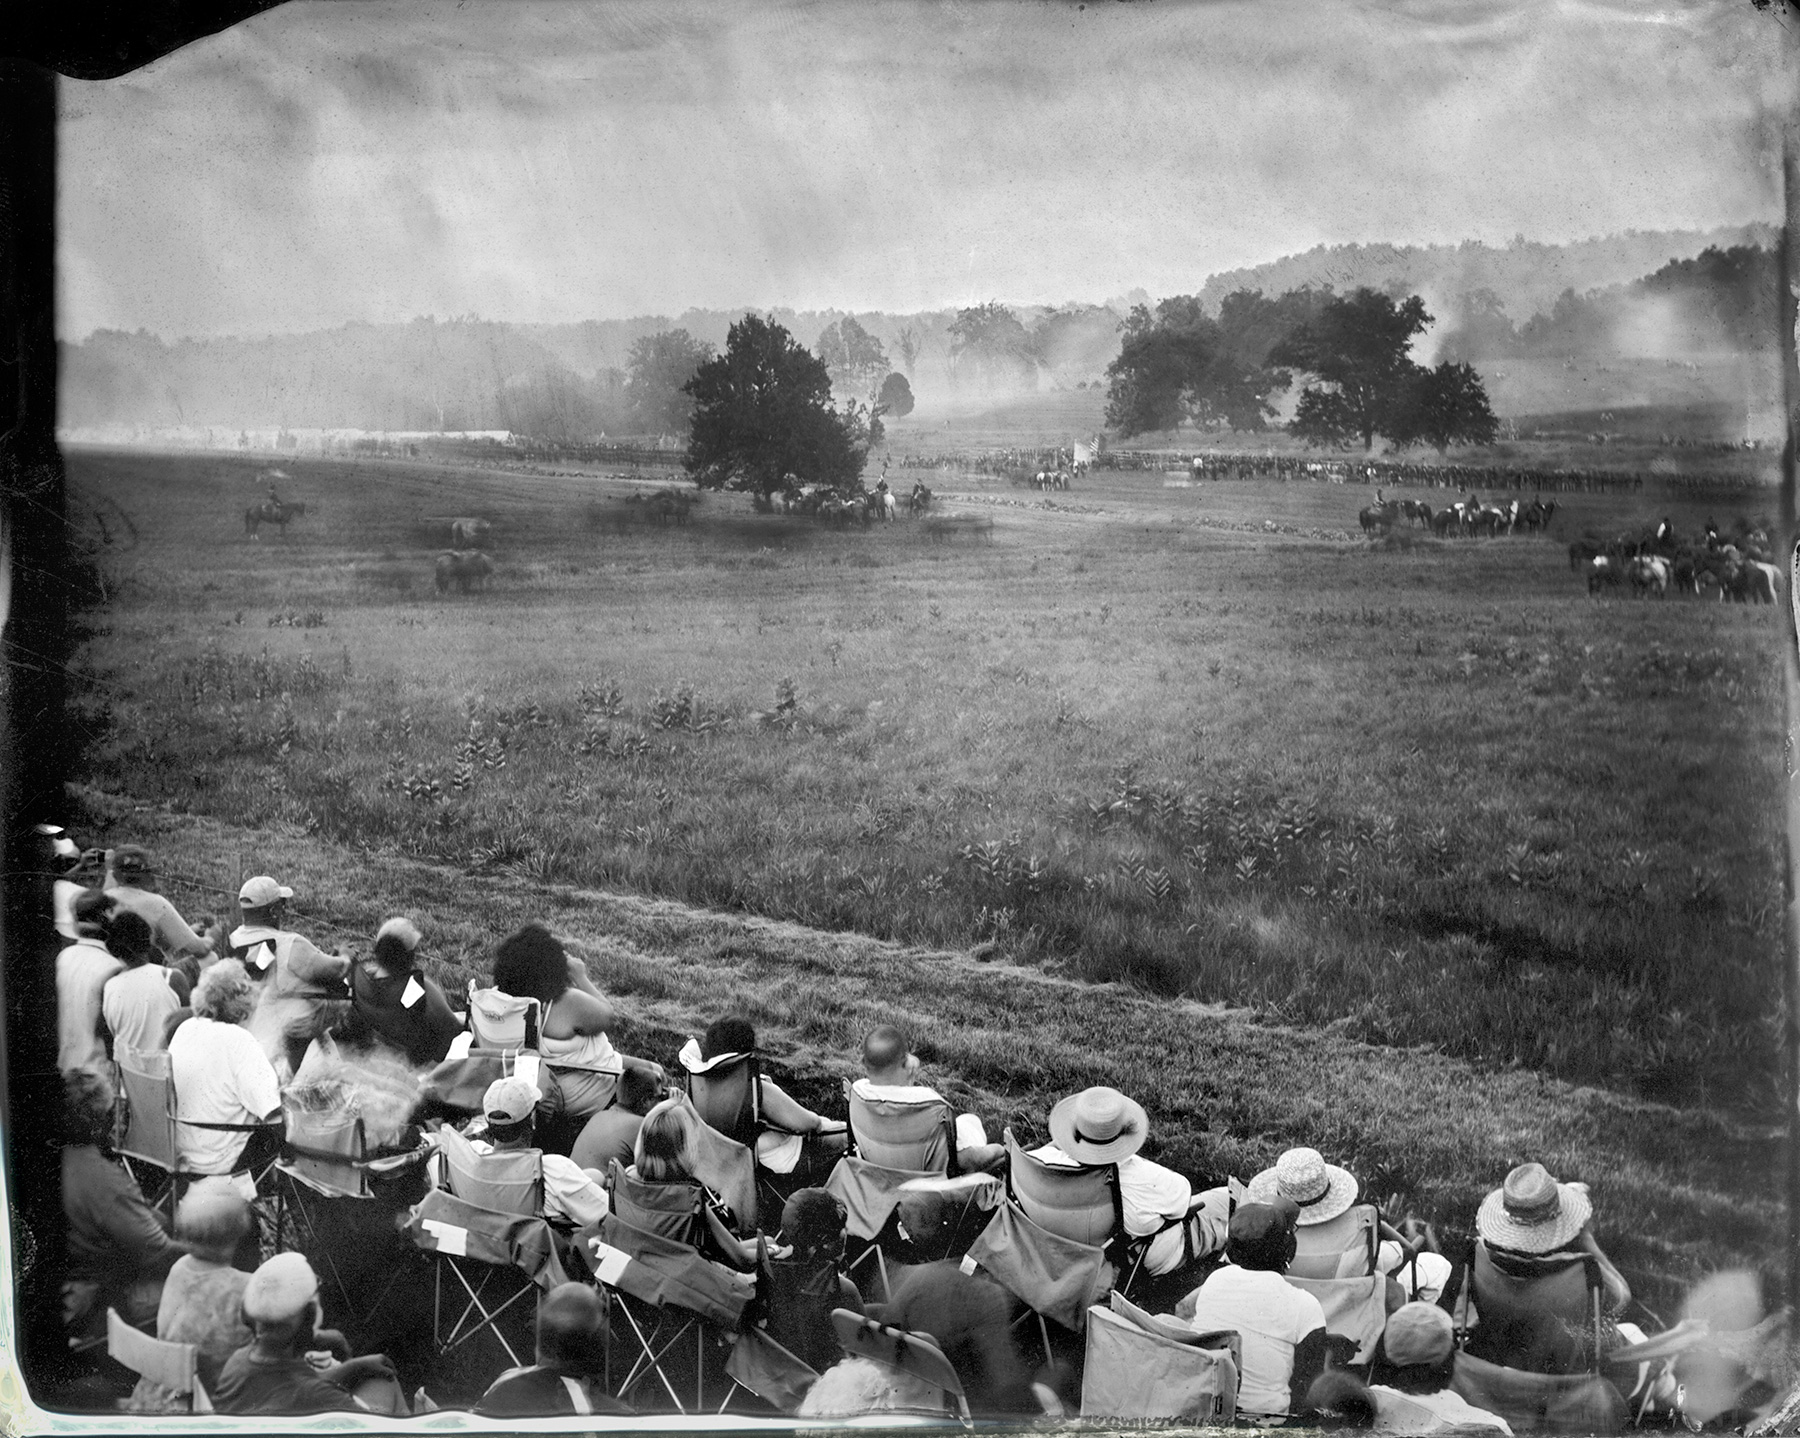 Spectators with Battle in Distance, Gettysburg, 2012